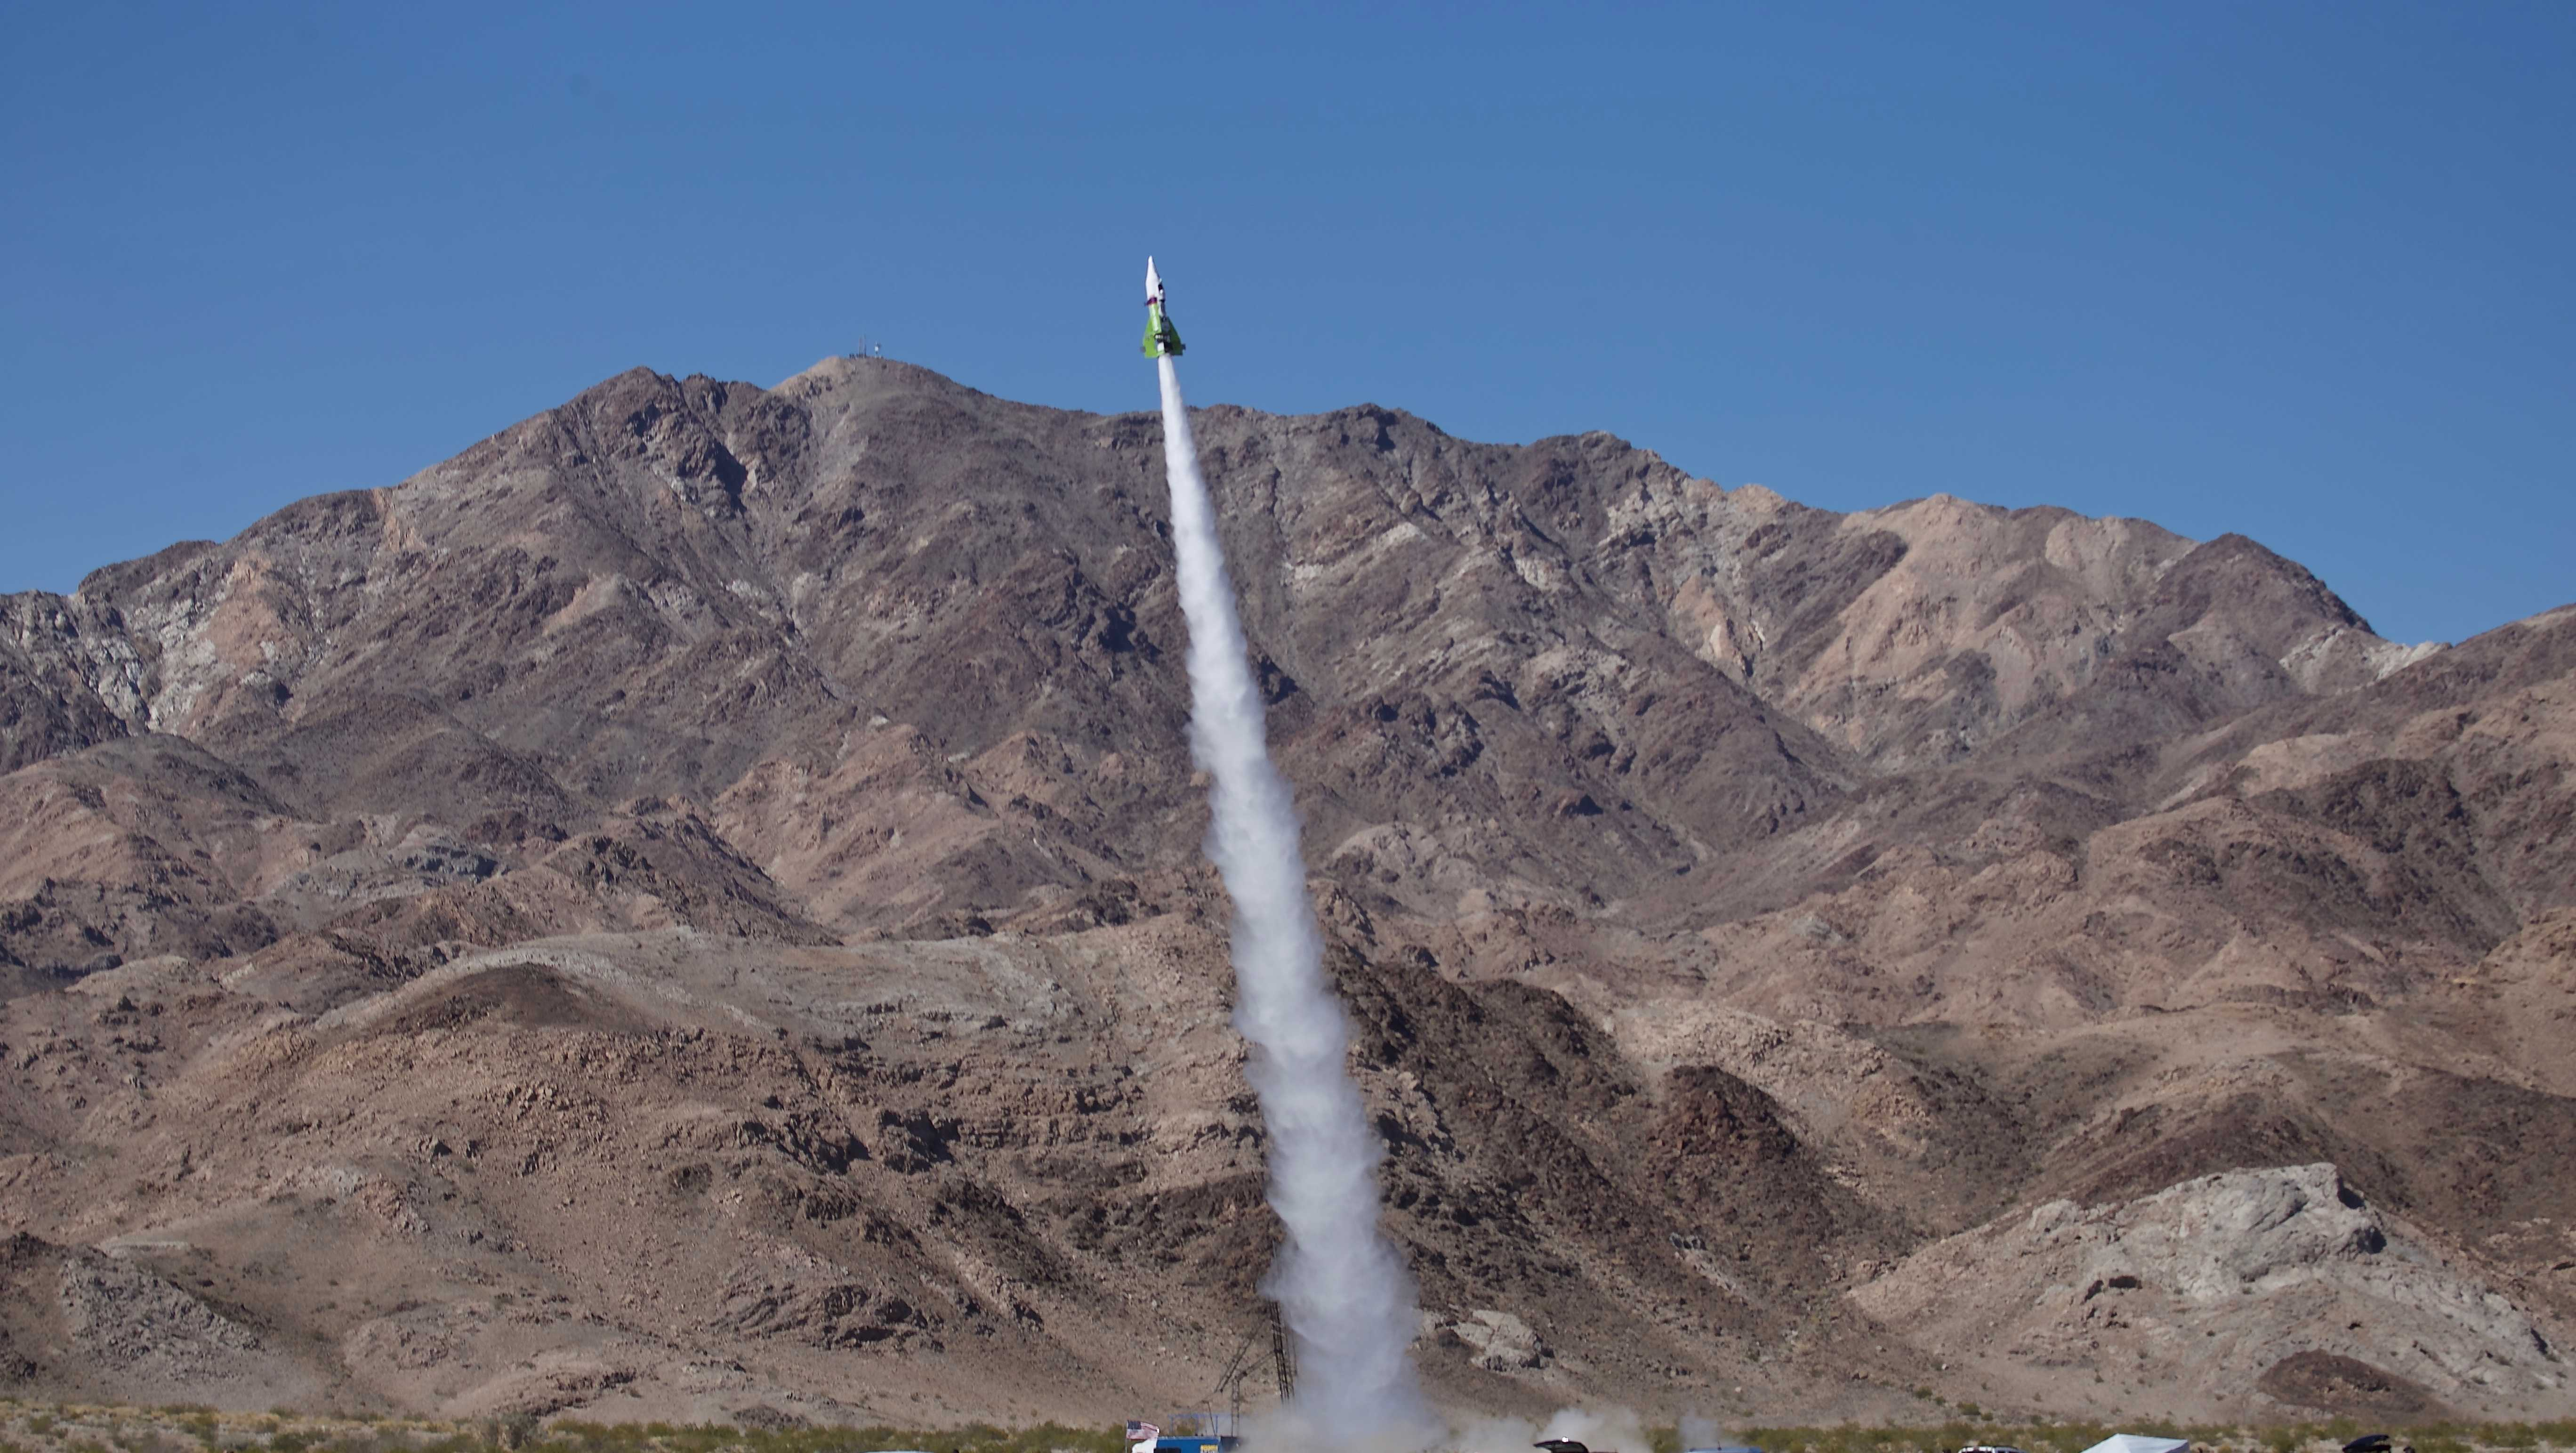 """Mad"" Mike Hughes' home-made rocket launches near Amboy, Calif., on Saturday, March 24, 2018. The self-taught rocket scientist who believes the Earth is flat propelled himself about 1,875 feet into the air before a hard-landing in the Mojave Desert that left him injured."